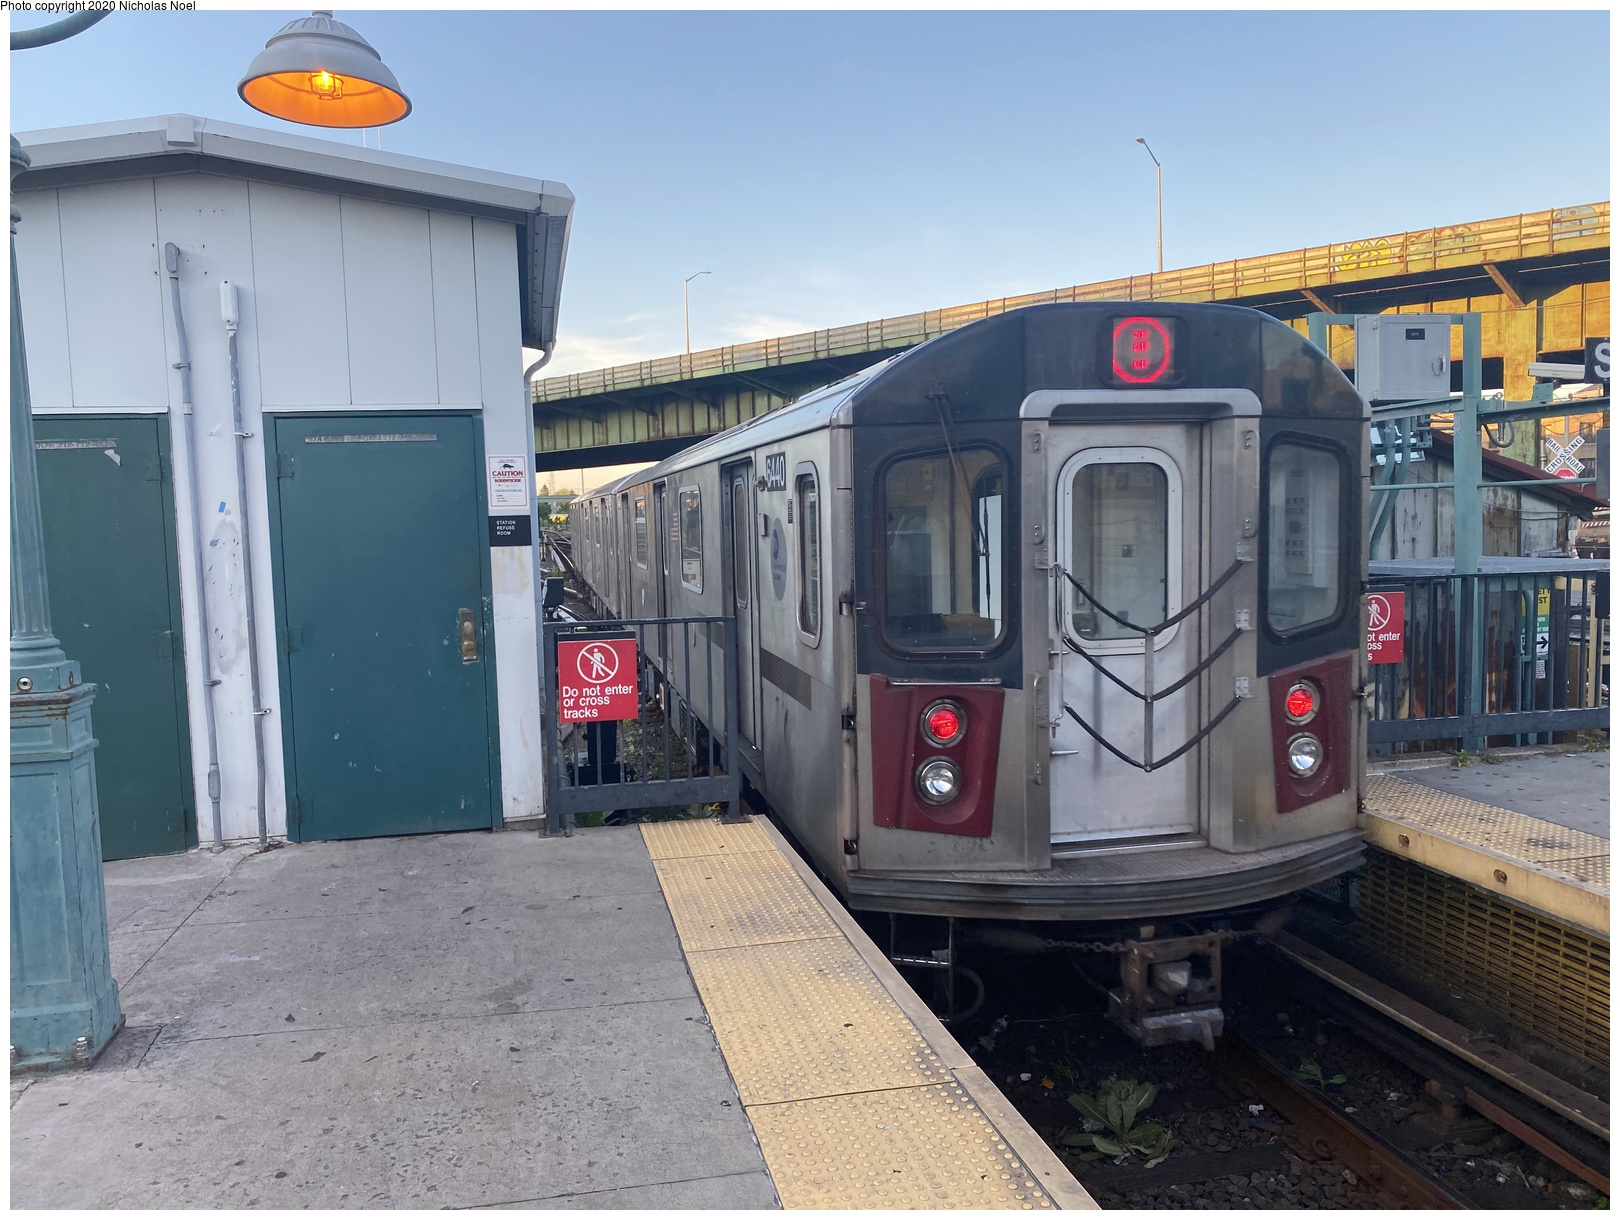 (190k, 1044x727)<br><b>Country:</b> United States<br><b>City:</b> New York<br><b>System:</b> New York City Transit<br><b>Line:</b> BMT Nassau Street/Jamaica Line<br><b>Location:</b> Broadway/East New York (Broadway Junction) <br><b>Route:</b> Work Service<br><b>Car:</b> BMT Elevated Gate Car  <br><b>Photo by:</b> Joel Shanus<br><b>Notes:</b> BU 1300 series Gate cars with flat car in middle in work service, circa 1954.<br><b>Viewed (this week/total):</b> 2 / 1937